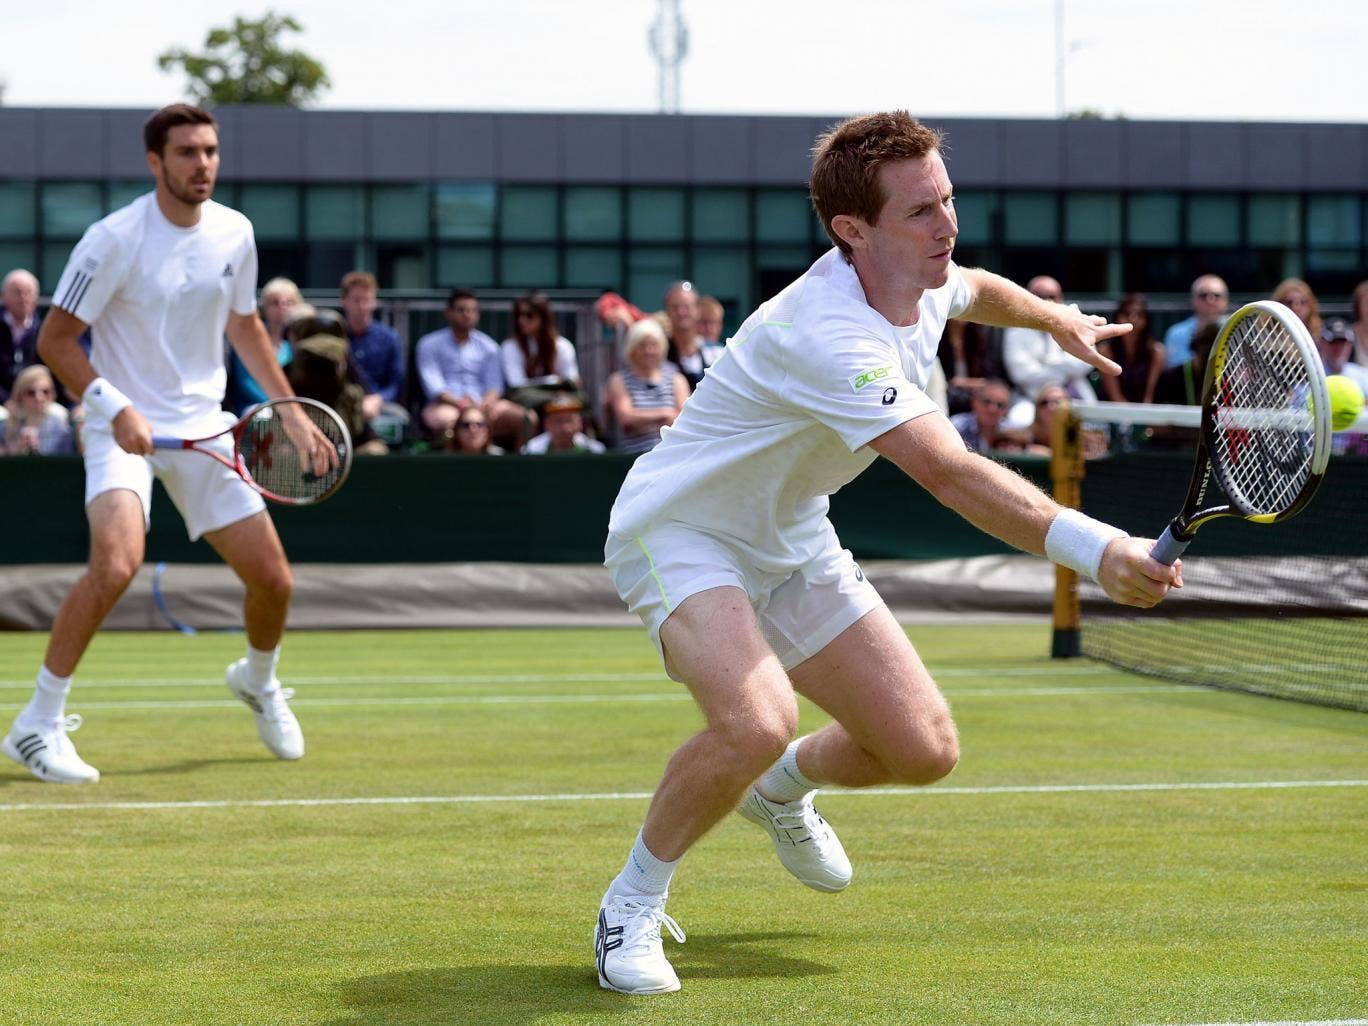 Grass master: Jonny Marray hits a volley in his doubles win